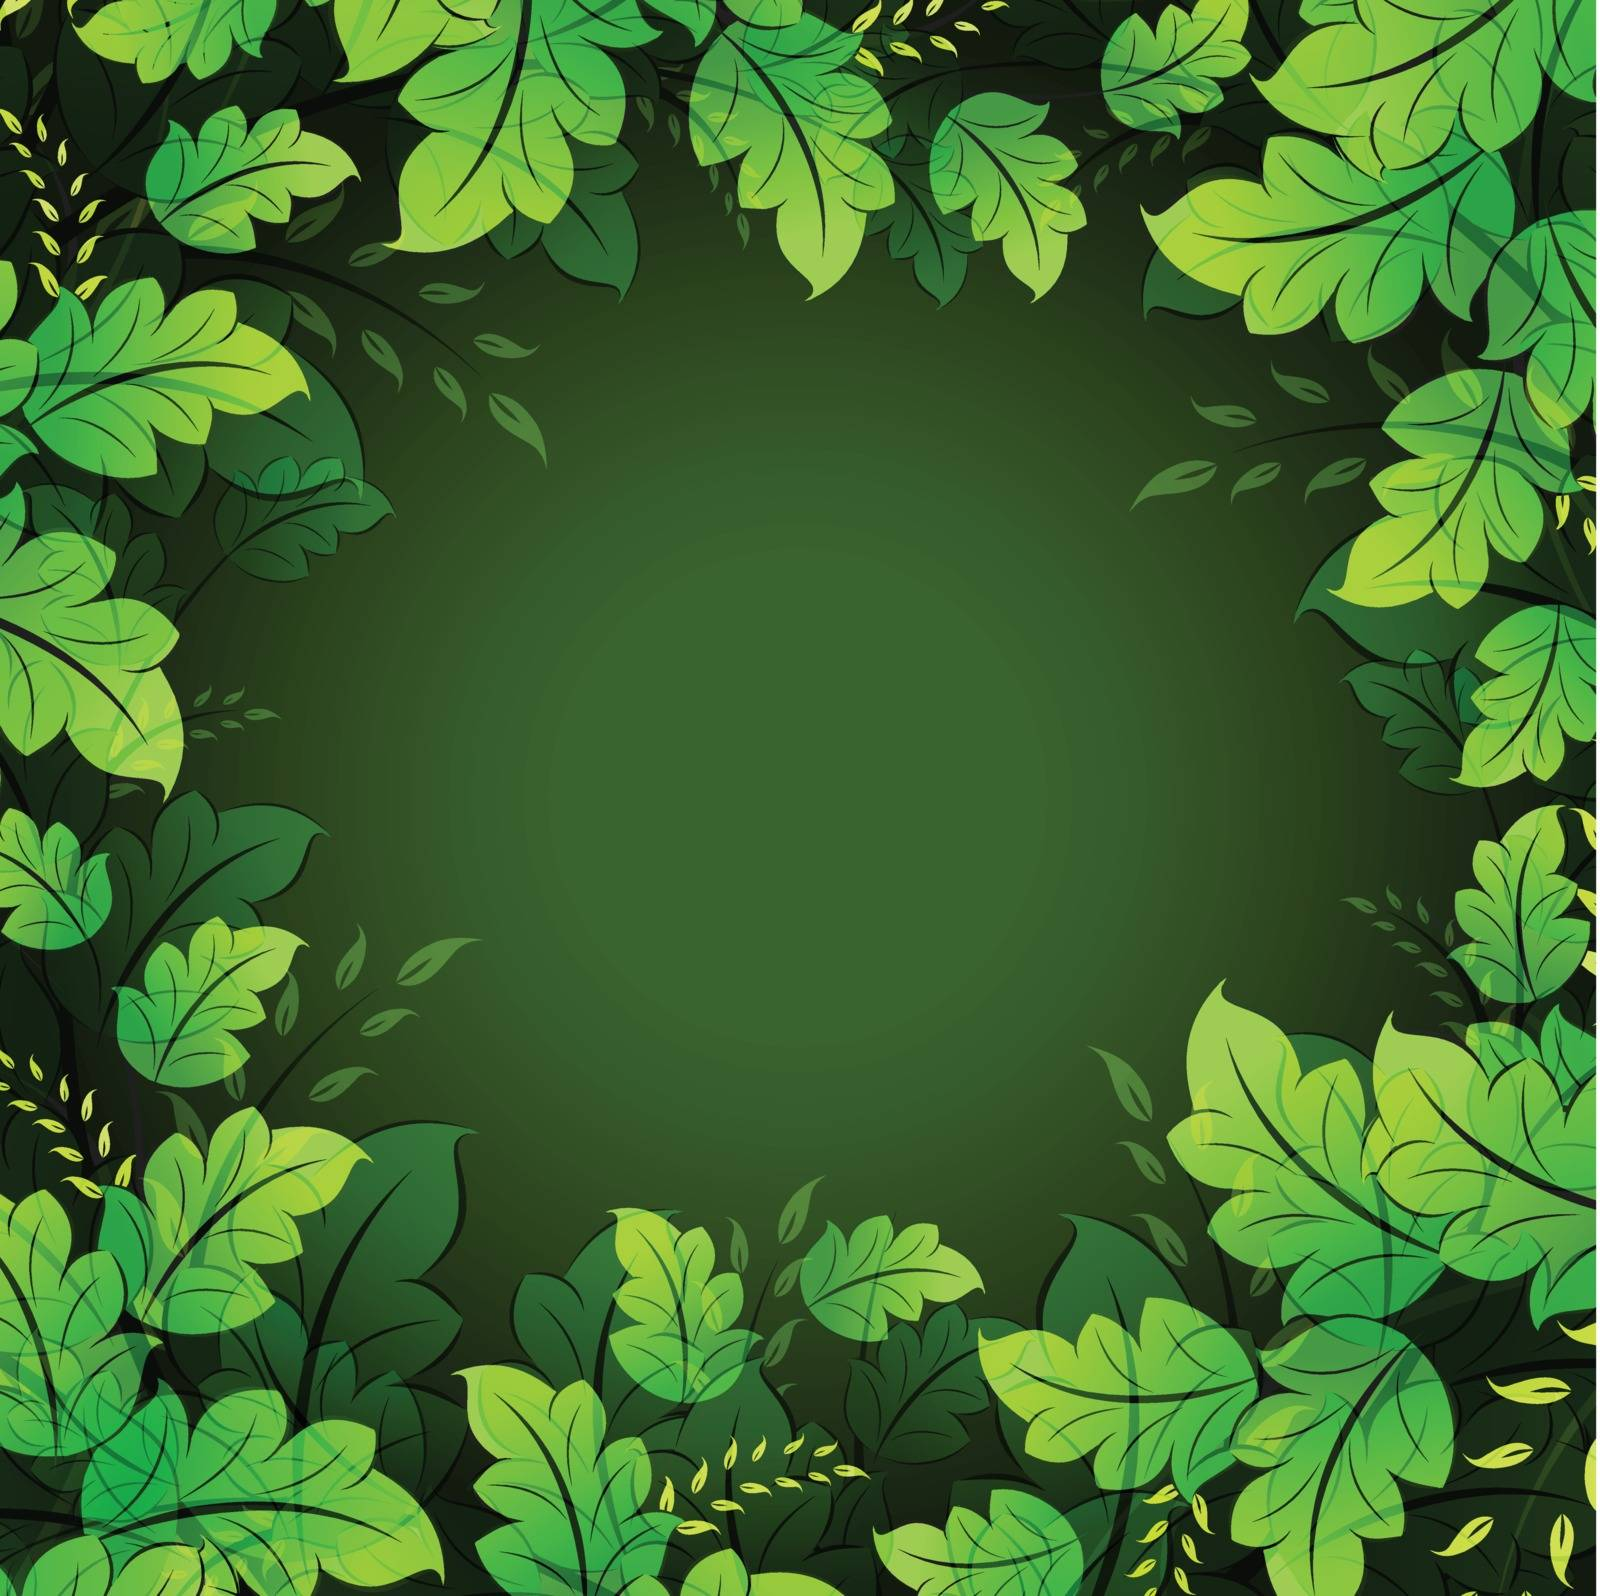 Floral frame with leaves for your design